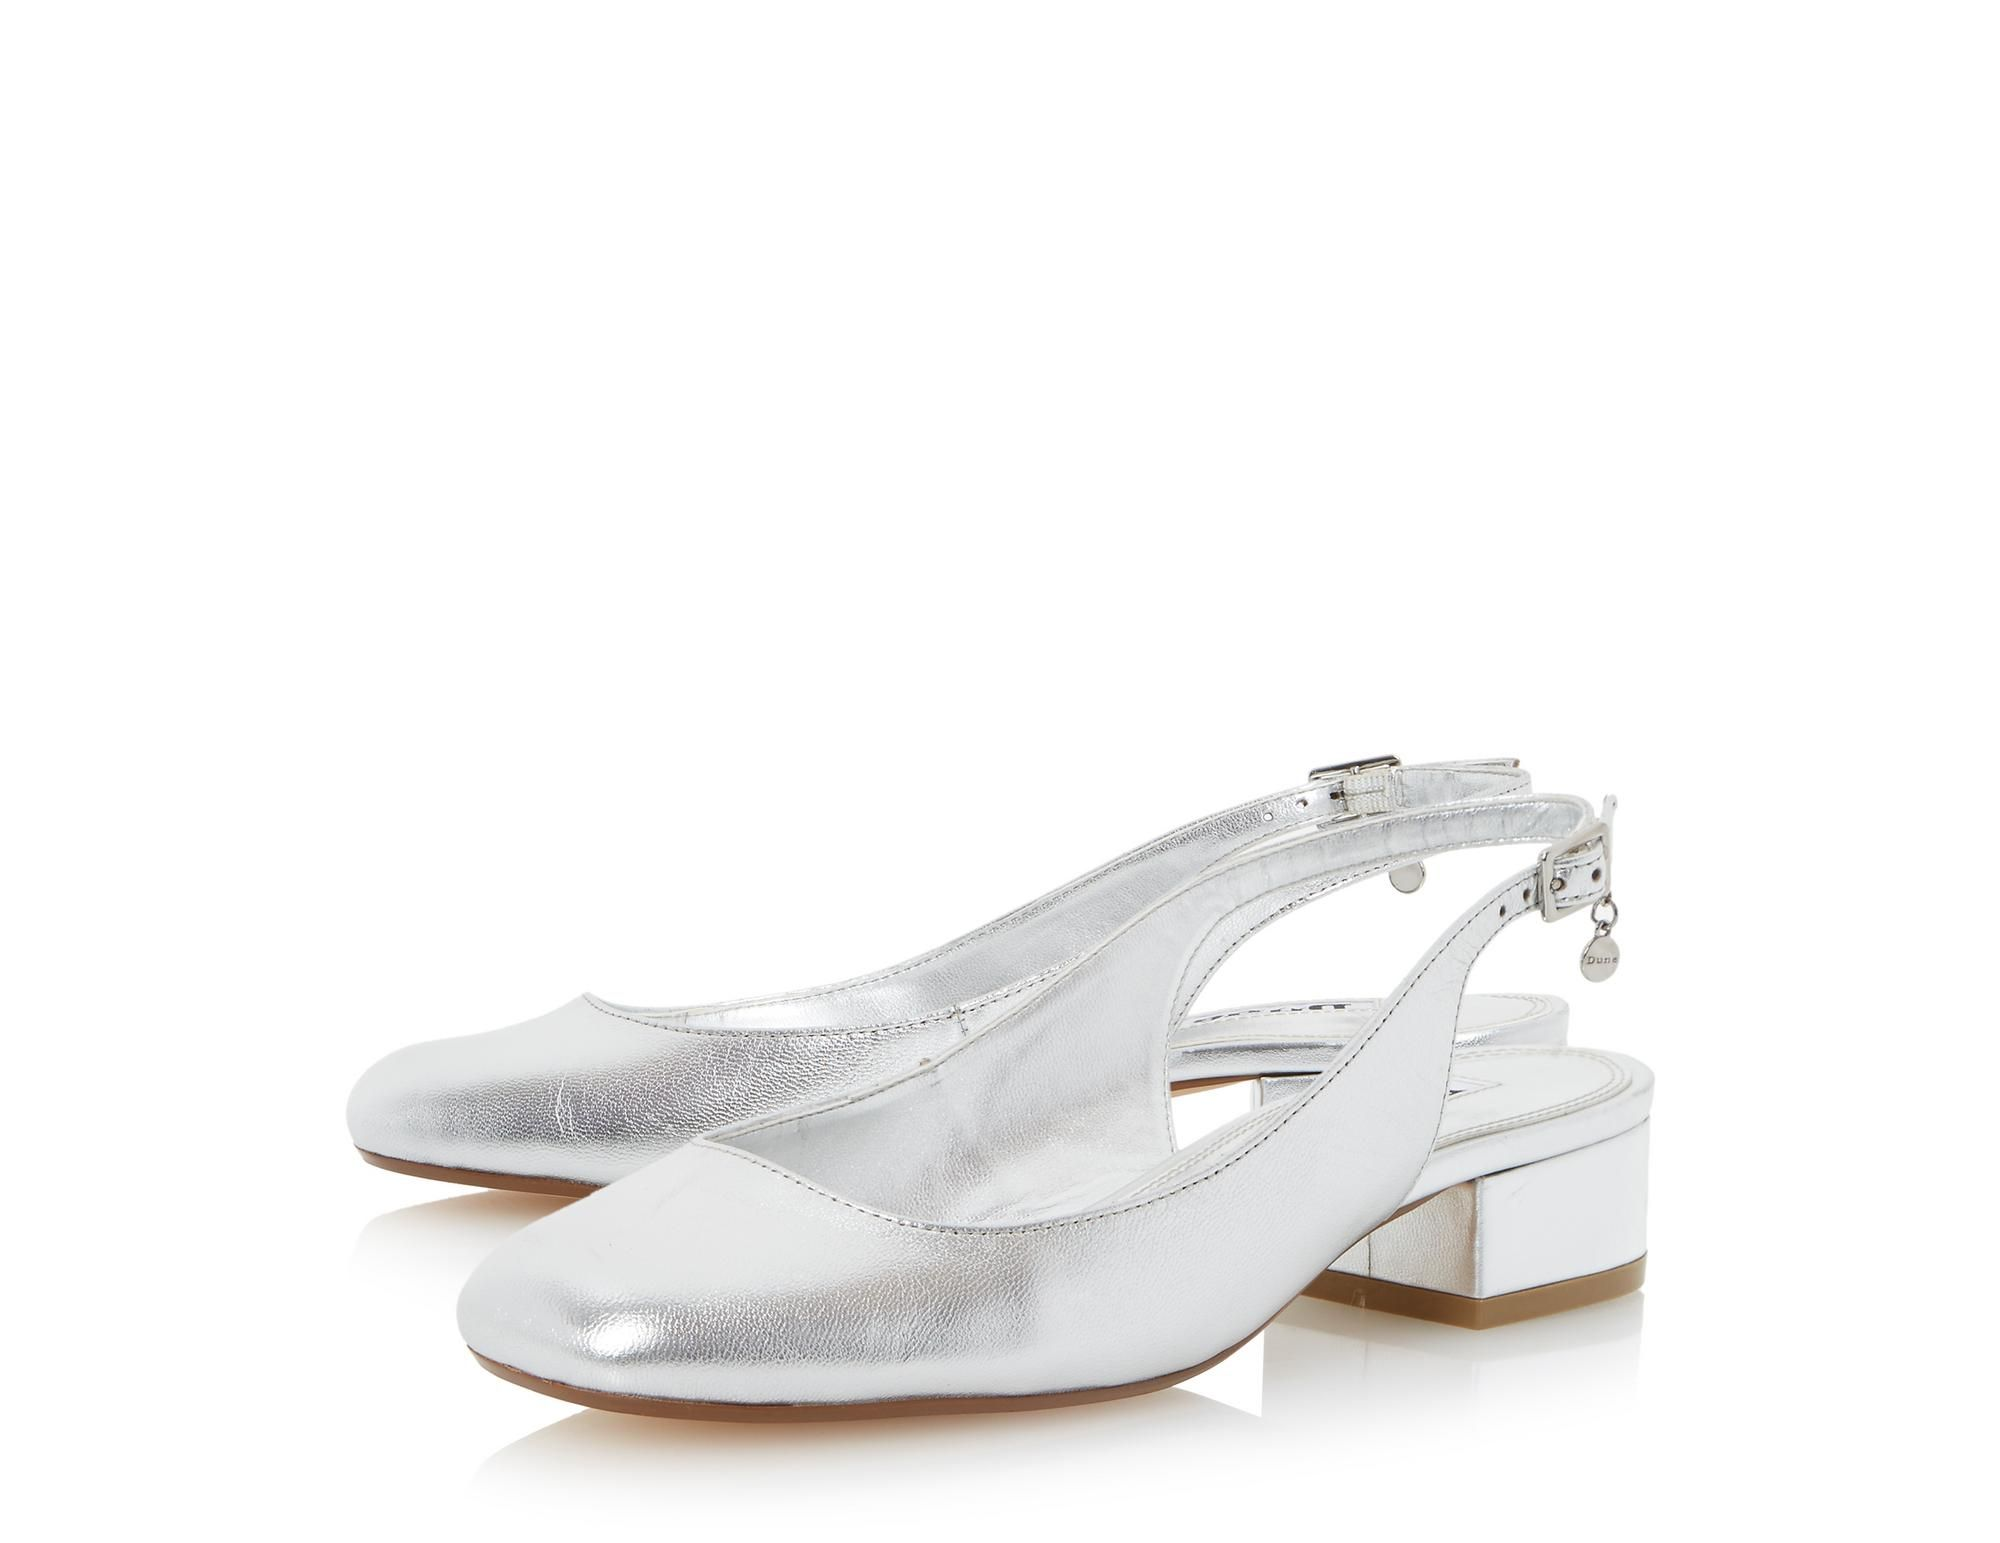 f042f6e7cc25 This stylish slingback court shoe is a cute everyday wardrobe staple.  Featuring a mid block heel